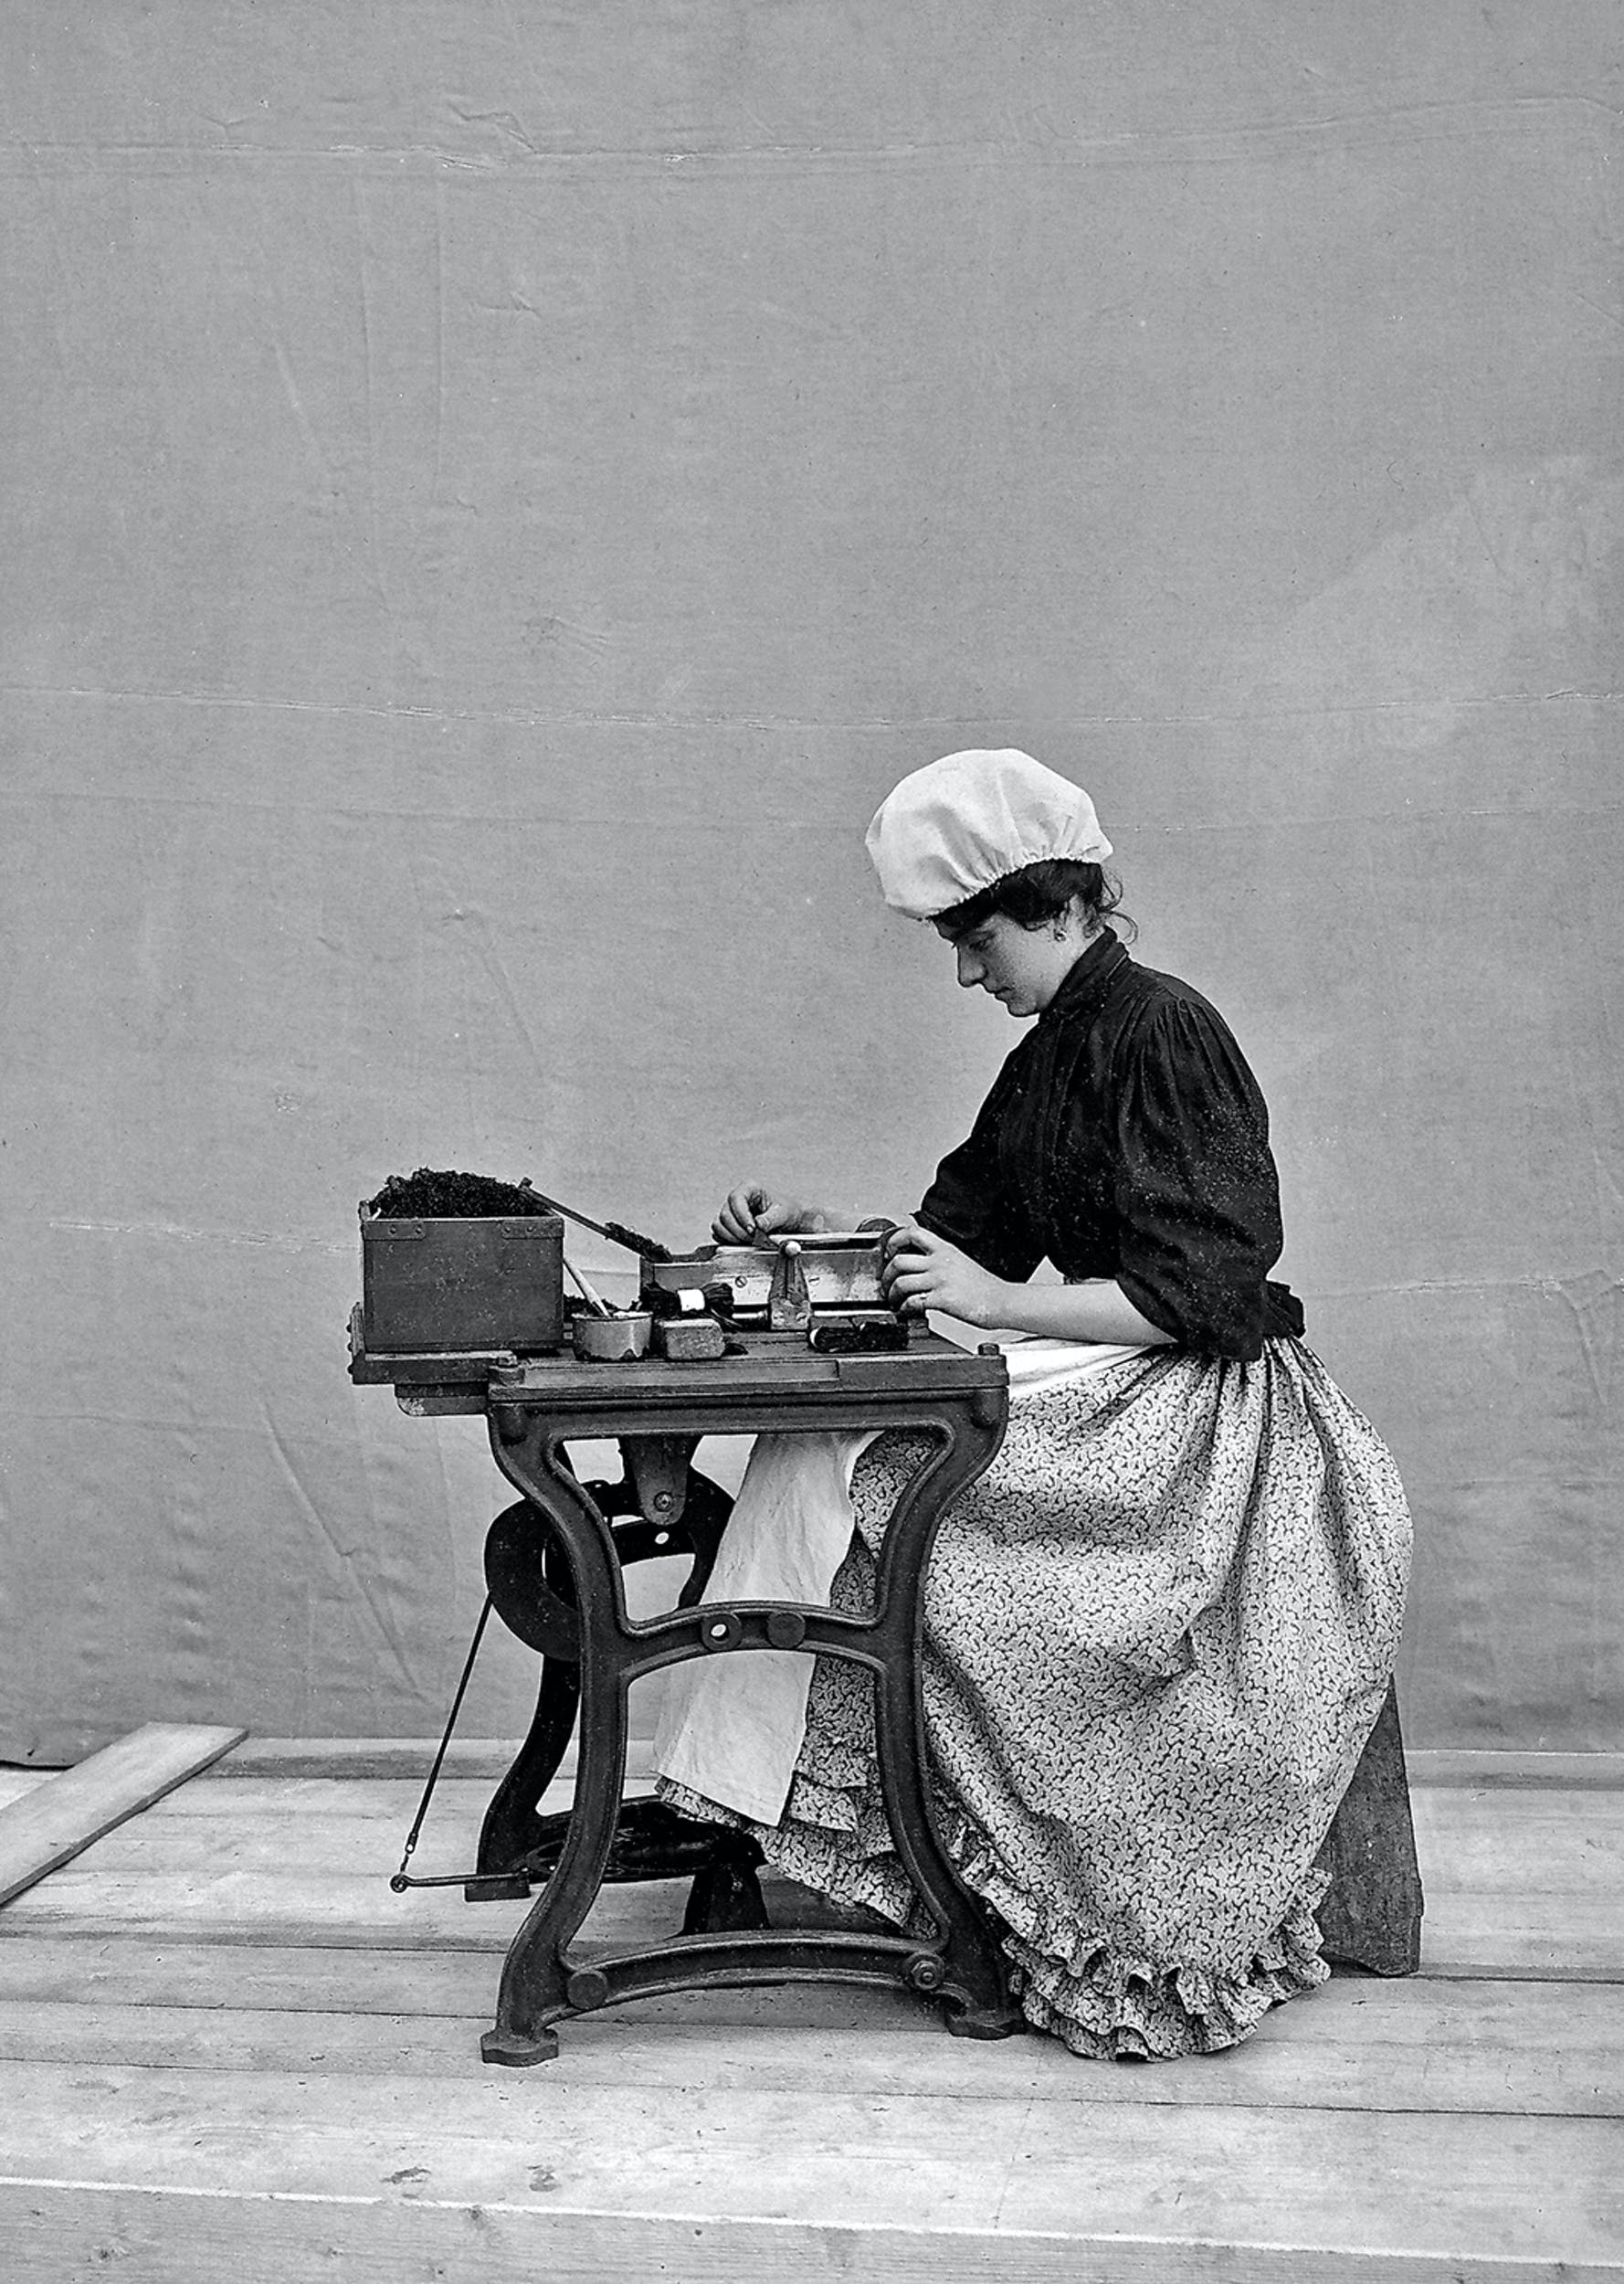 Fratelli Alinari Operaia della Manifattura Tabacchi di San Pancrazio, Firenze 1901 fotografia Archivi Alinari, Firenze I Fratelli Alinari Female Worker at the Manifattura Tabacchi, San Pancrazio, Florence  1901 photograph Archivi Alinari, Florence